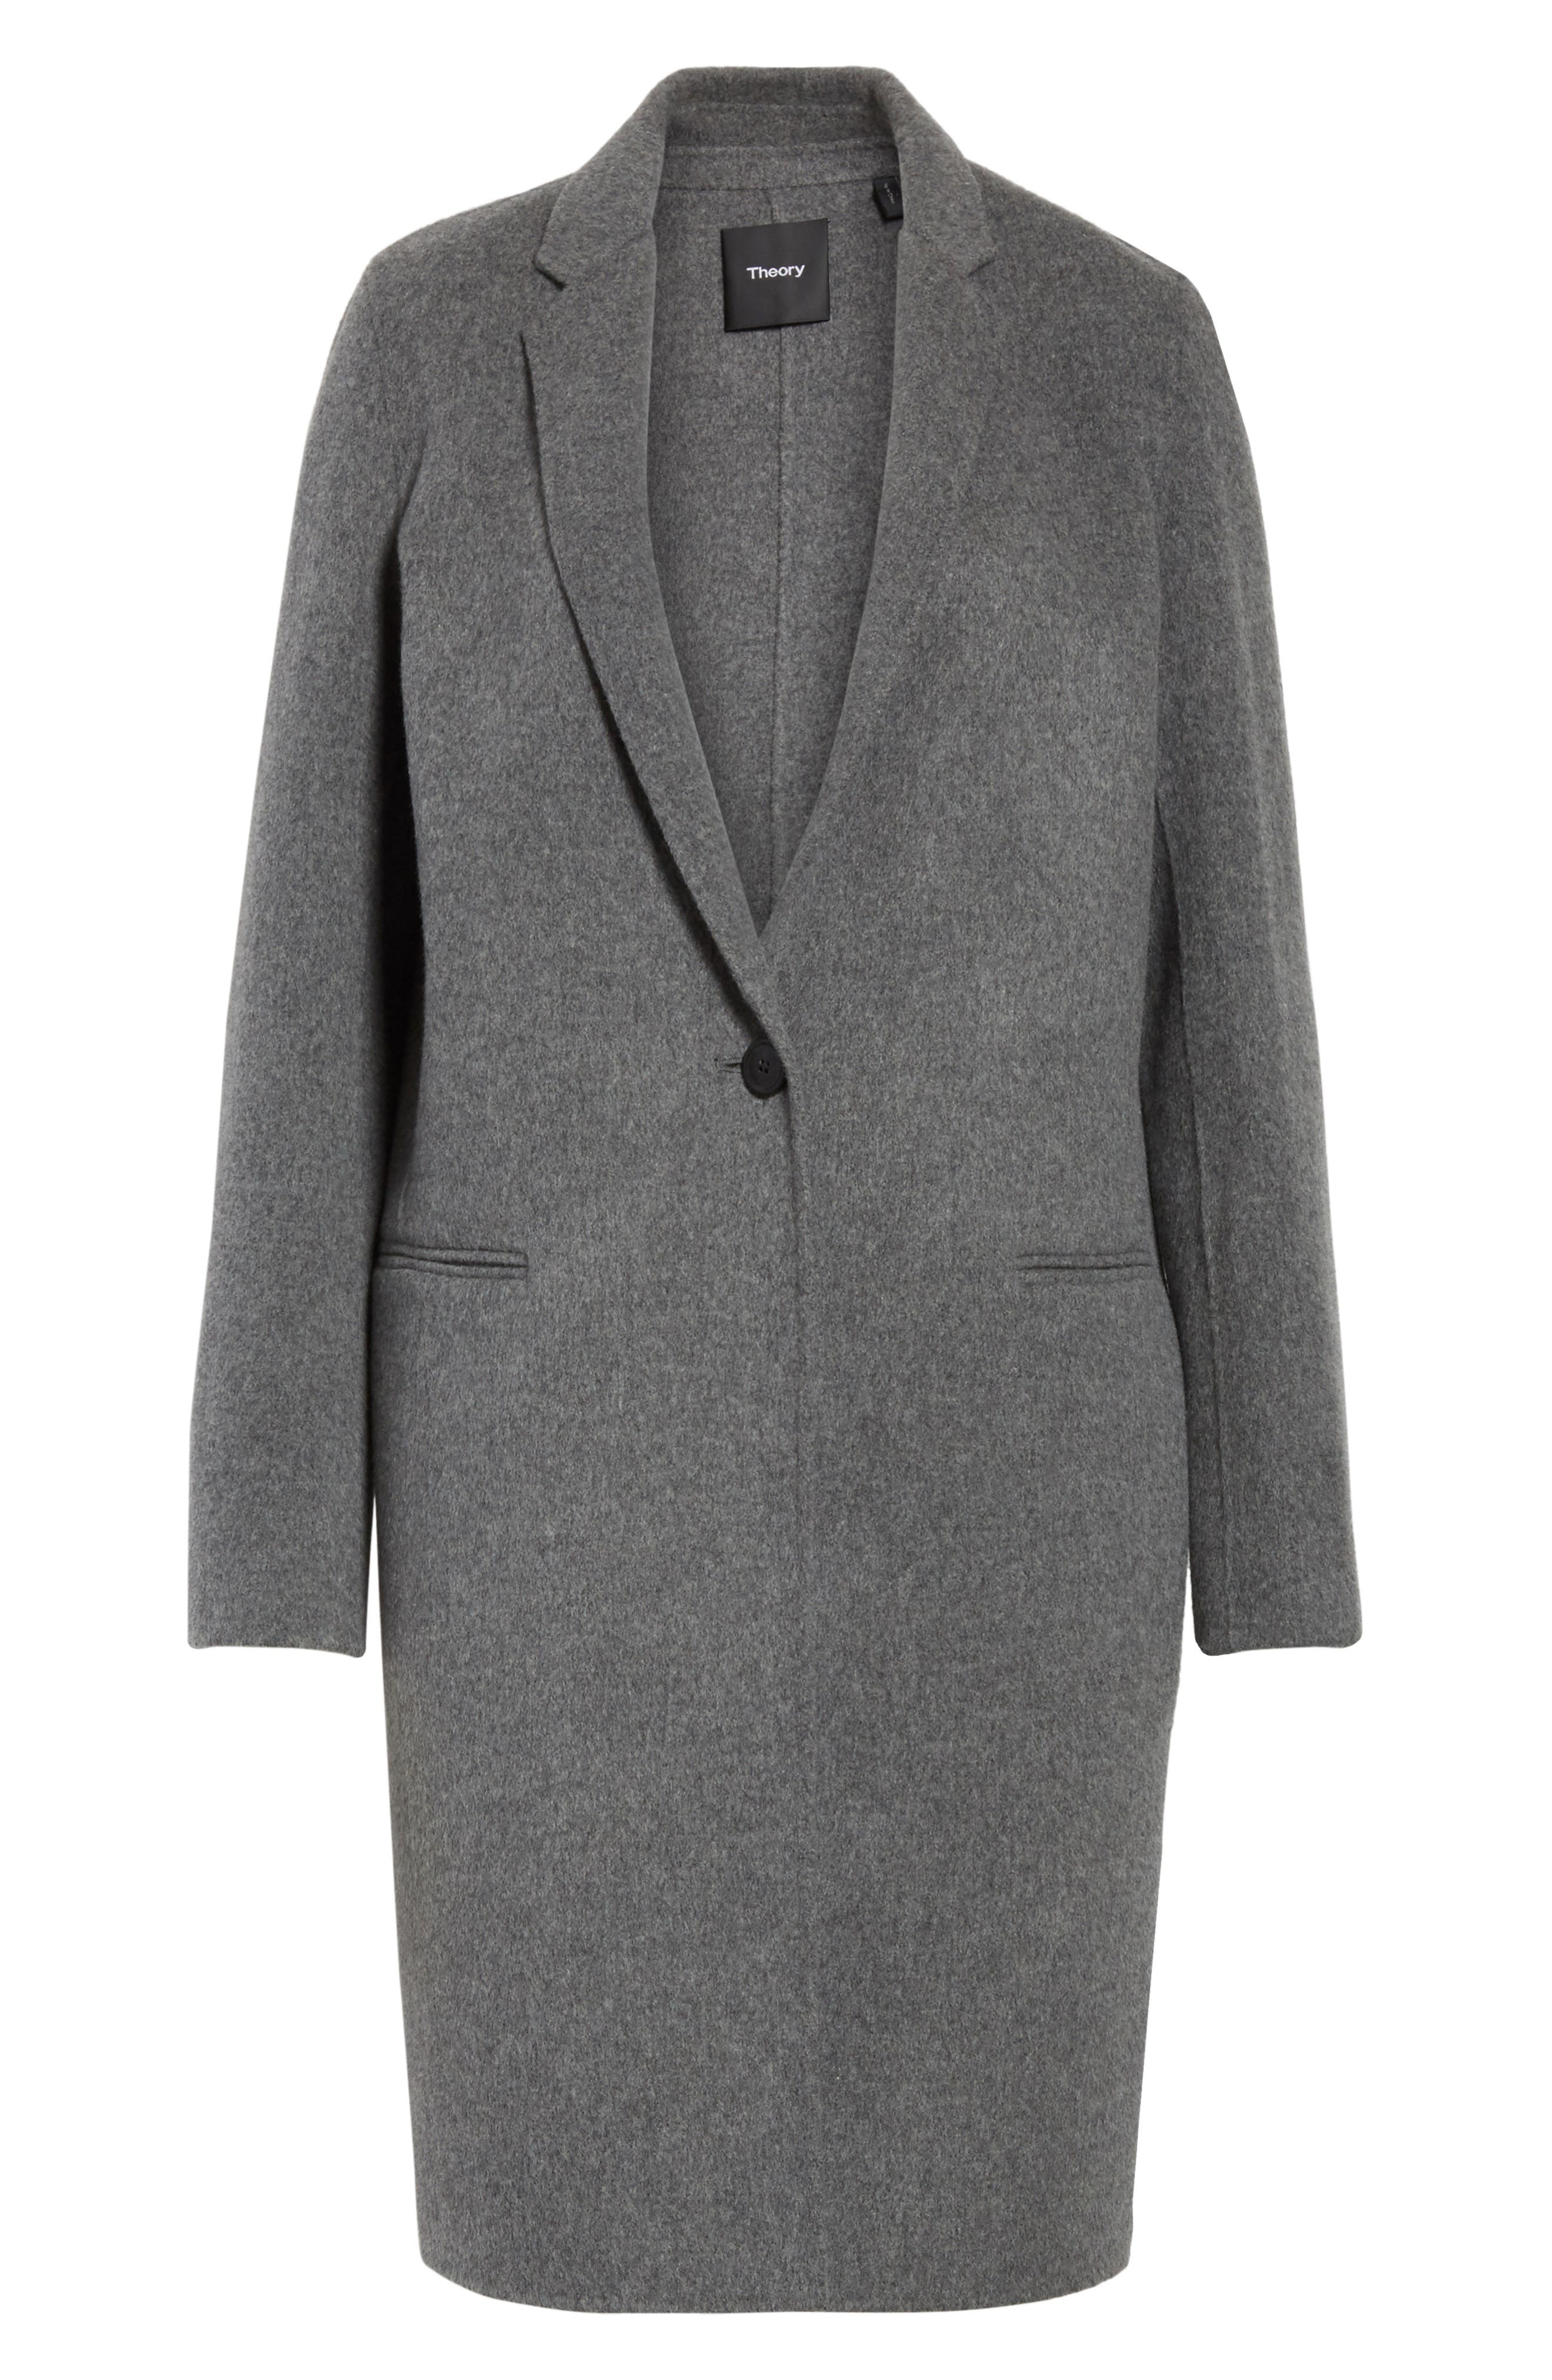 New Divide Wool & Cashmere Coat,                             Alternate thumbnail 5, color,                             021